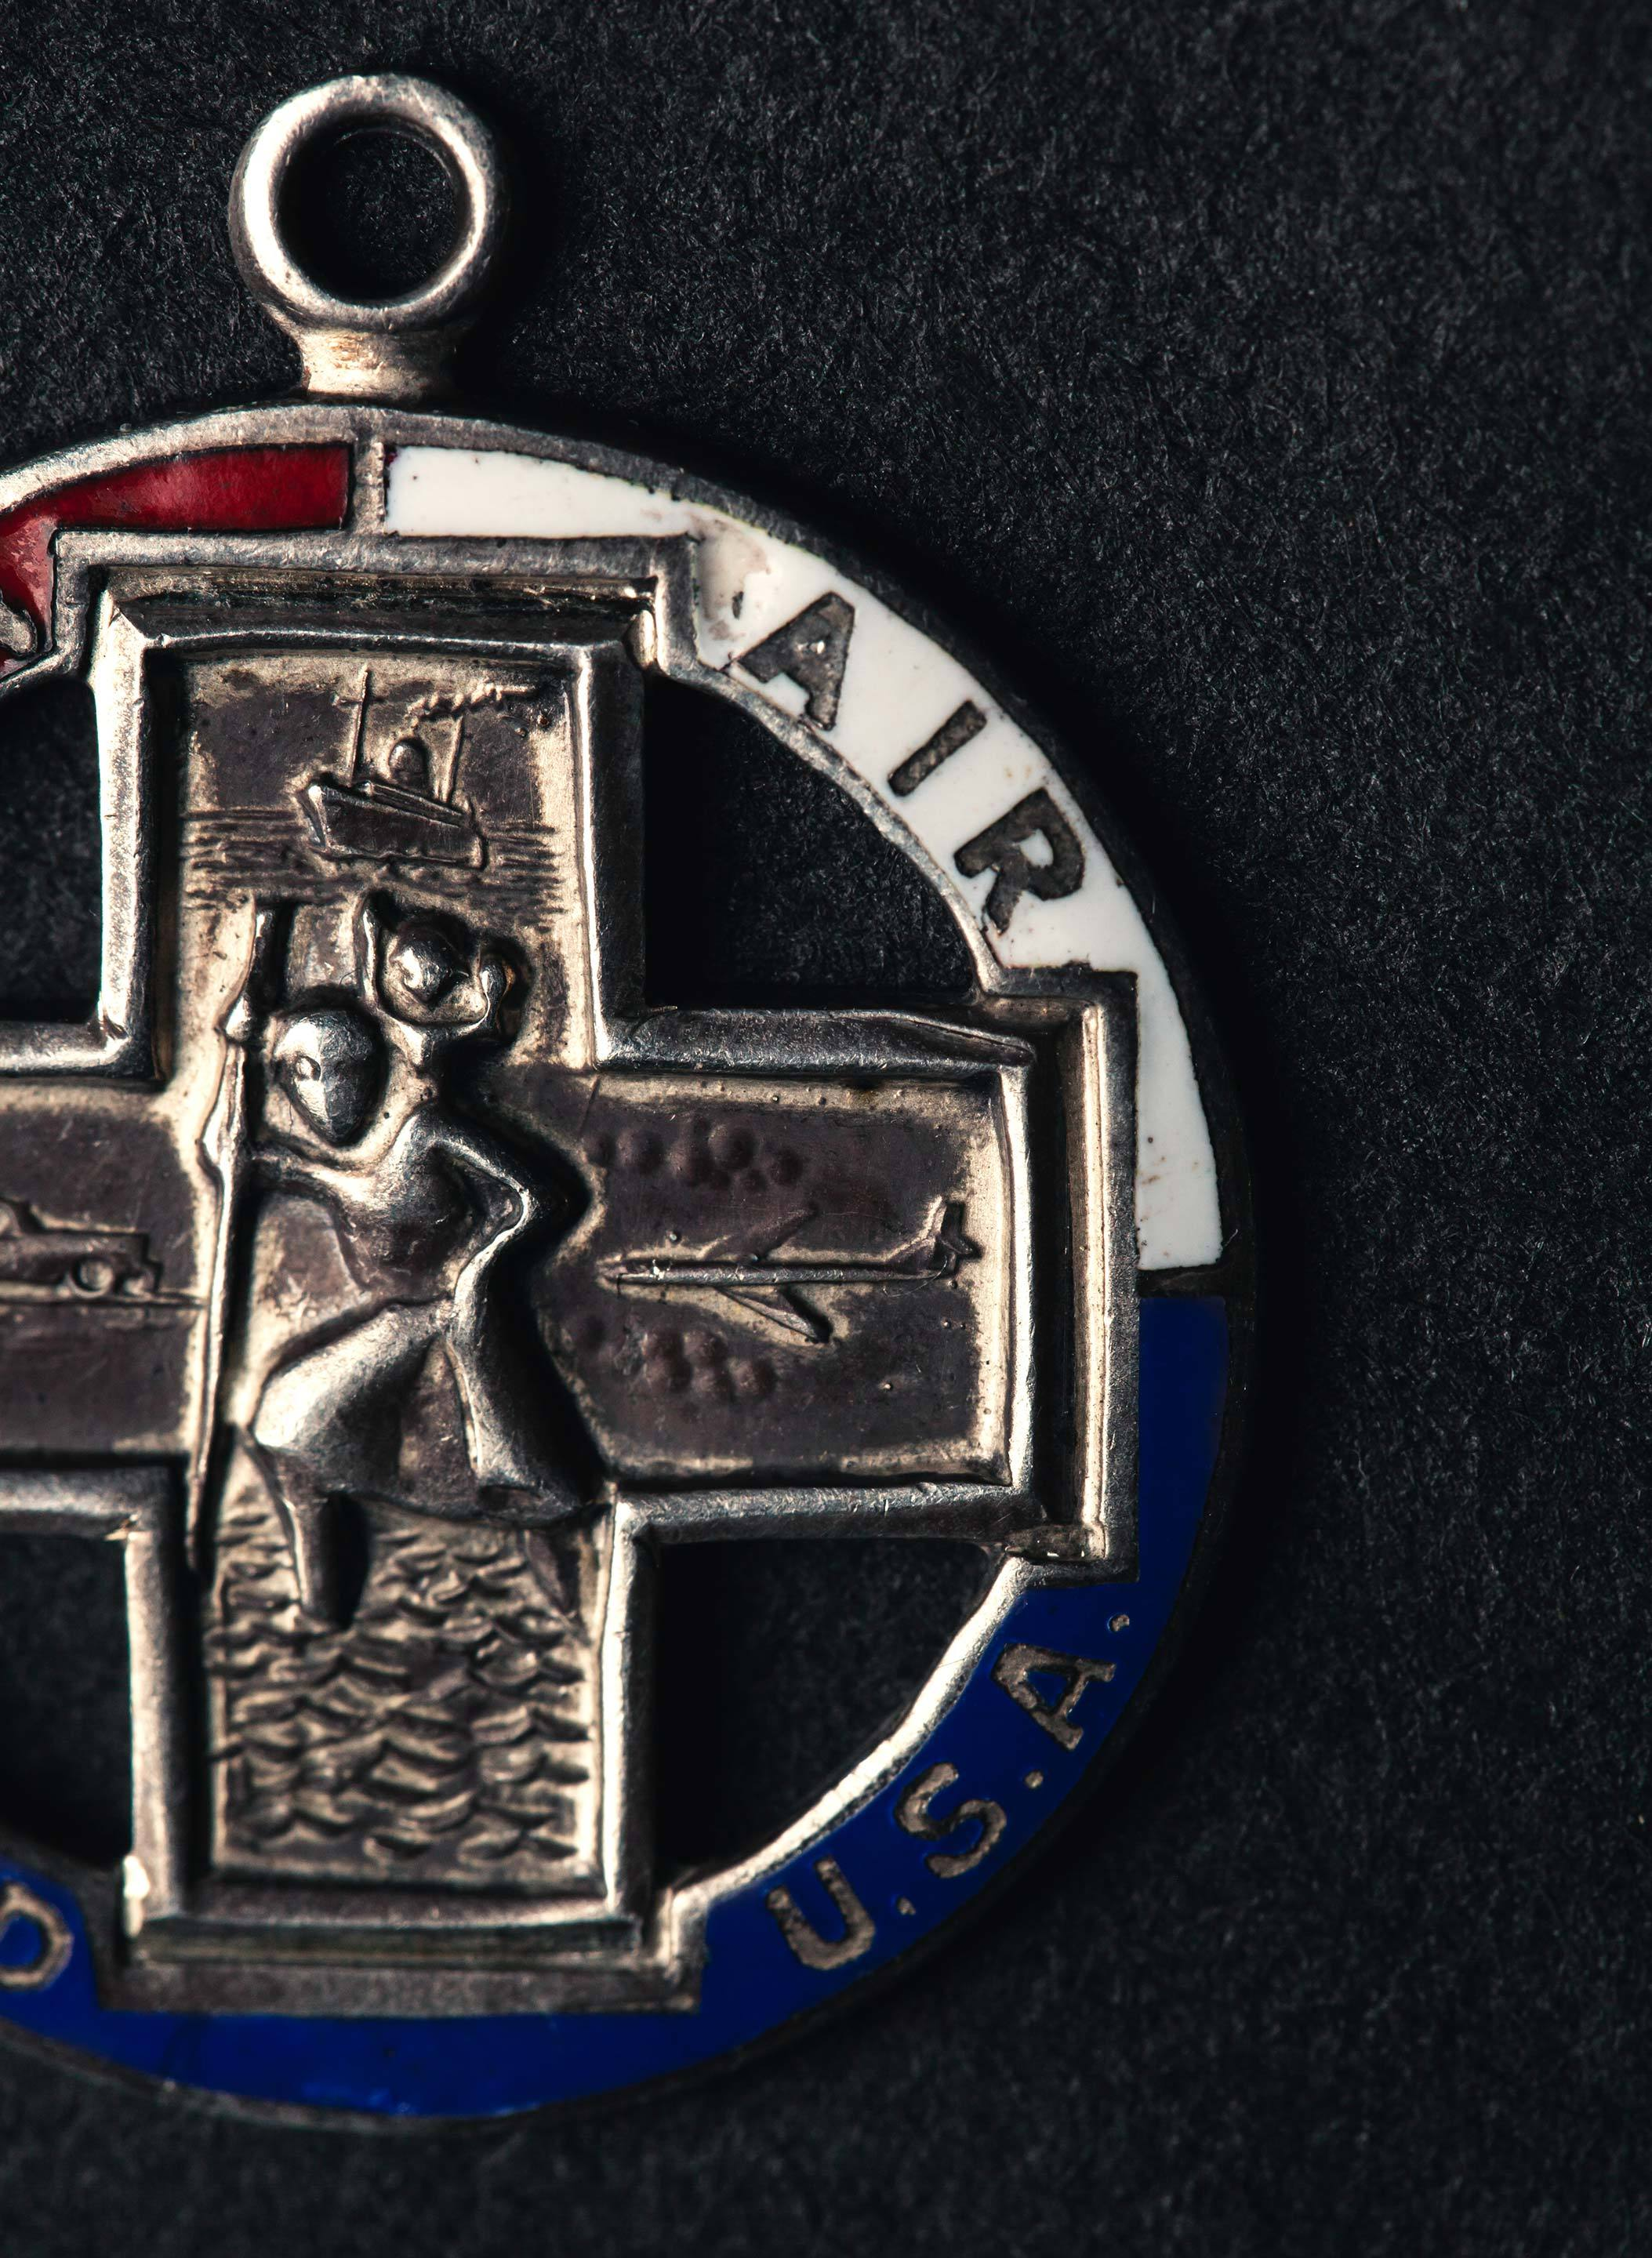 imogene + willie - 1950's st. christopher medal pendant